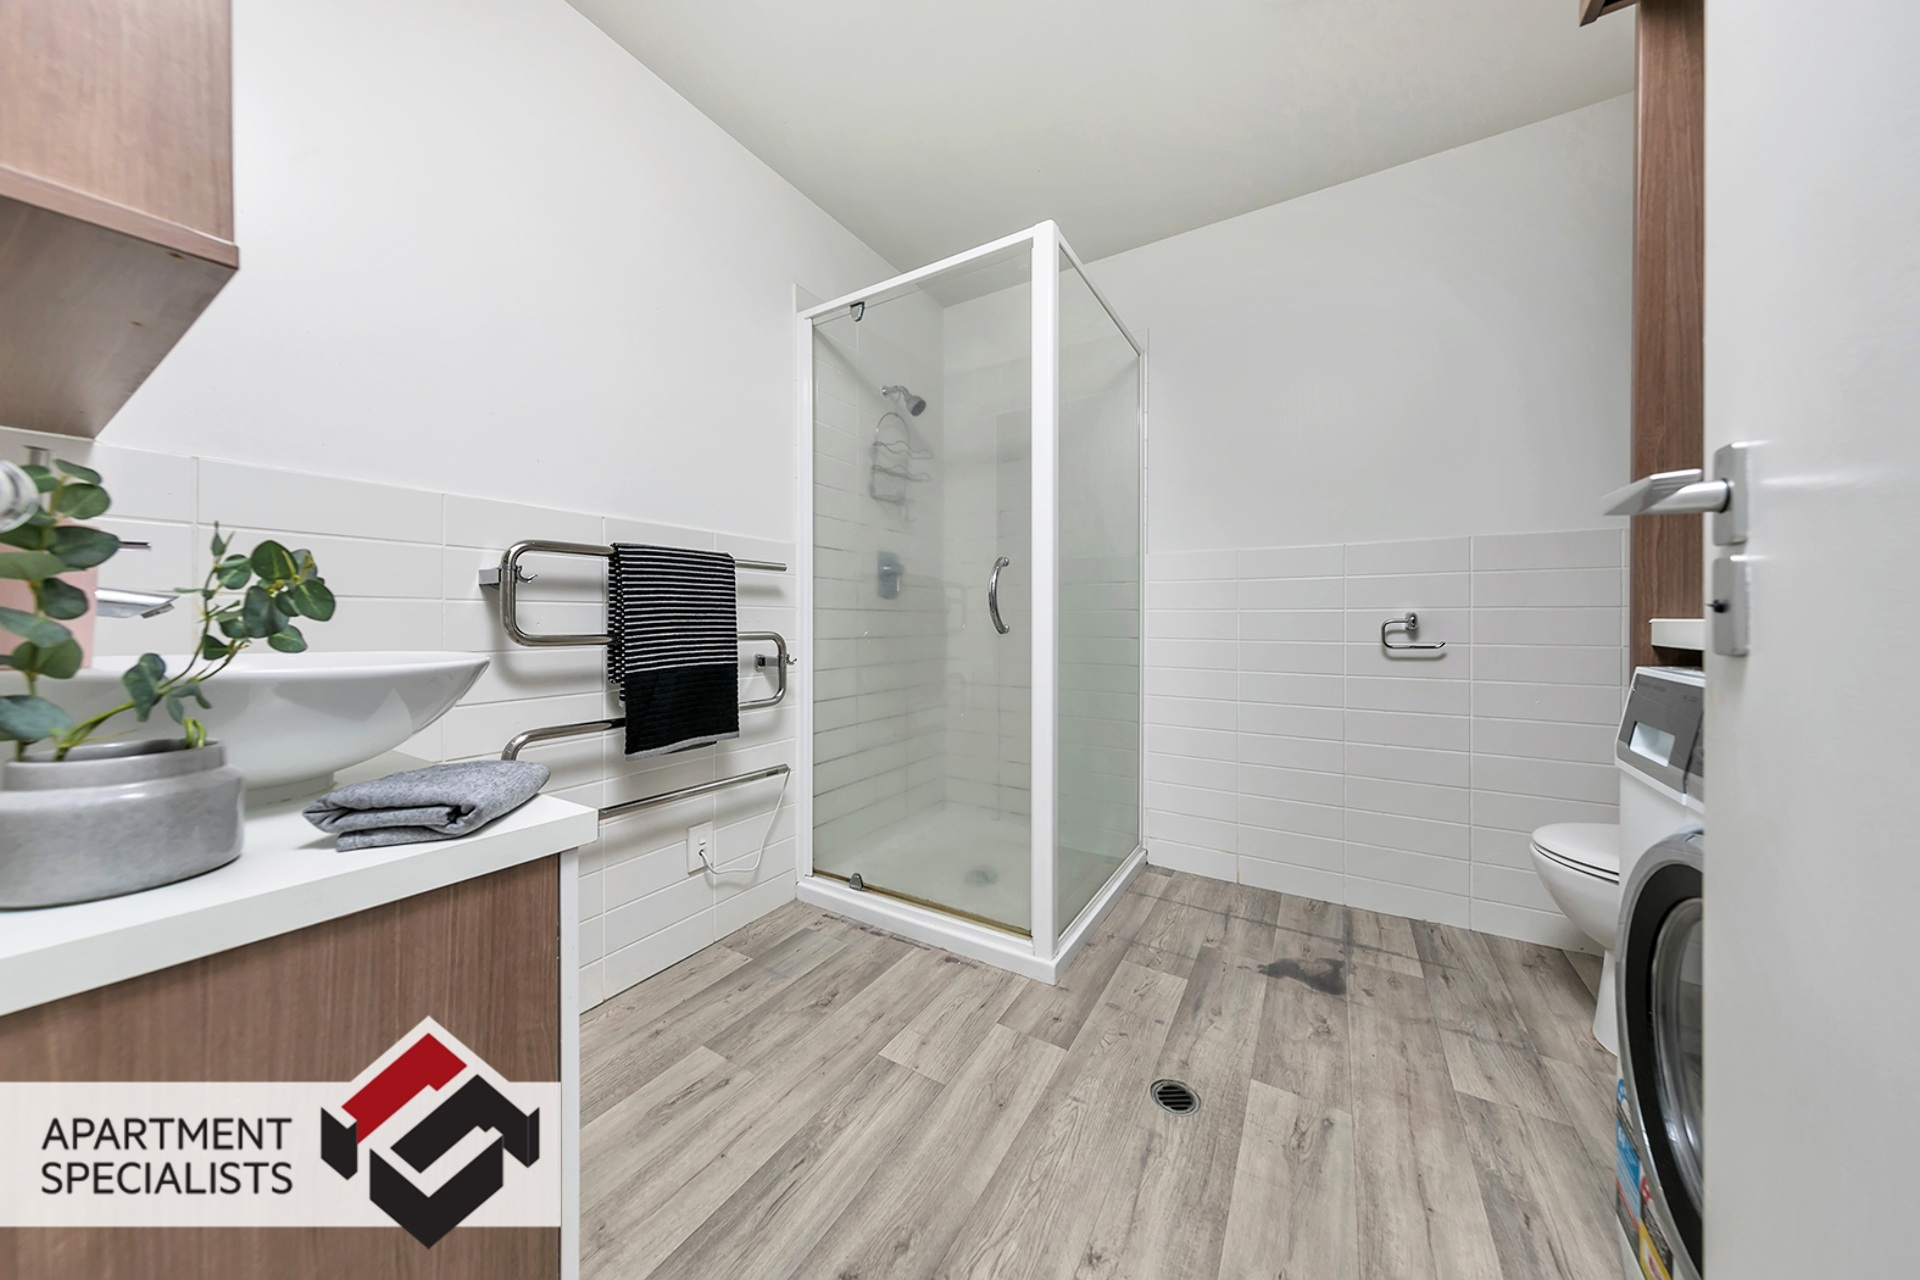 12 | 85 Beach Road, City Centre | Apartment Specialists